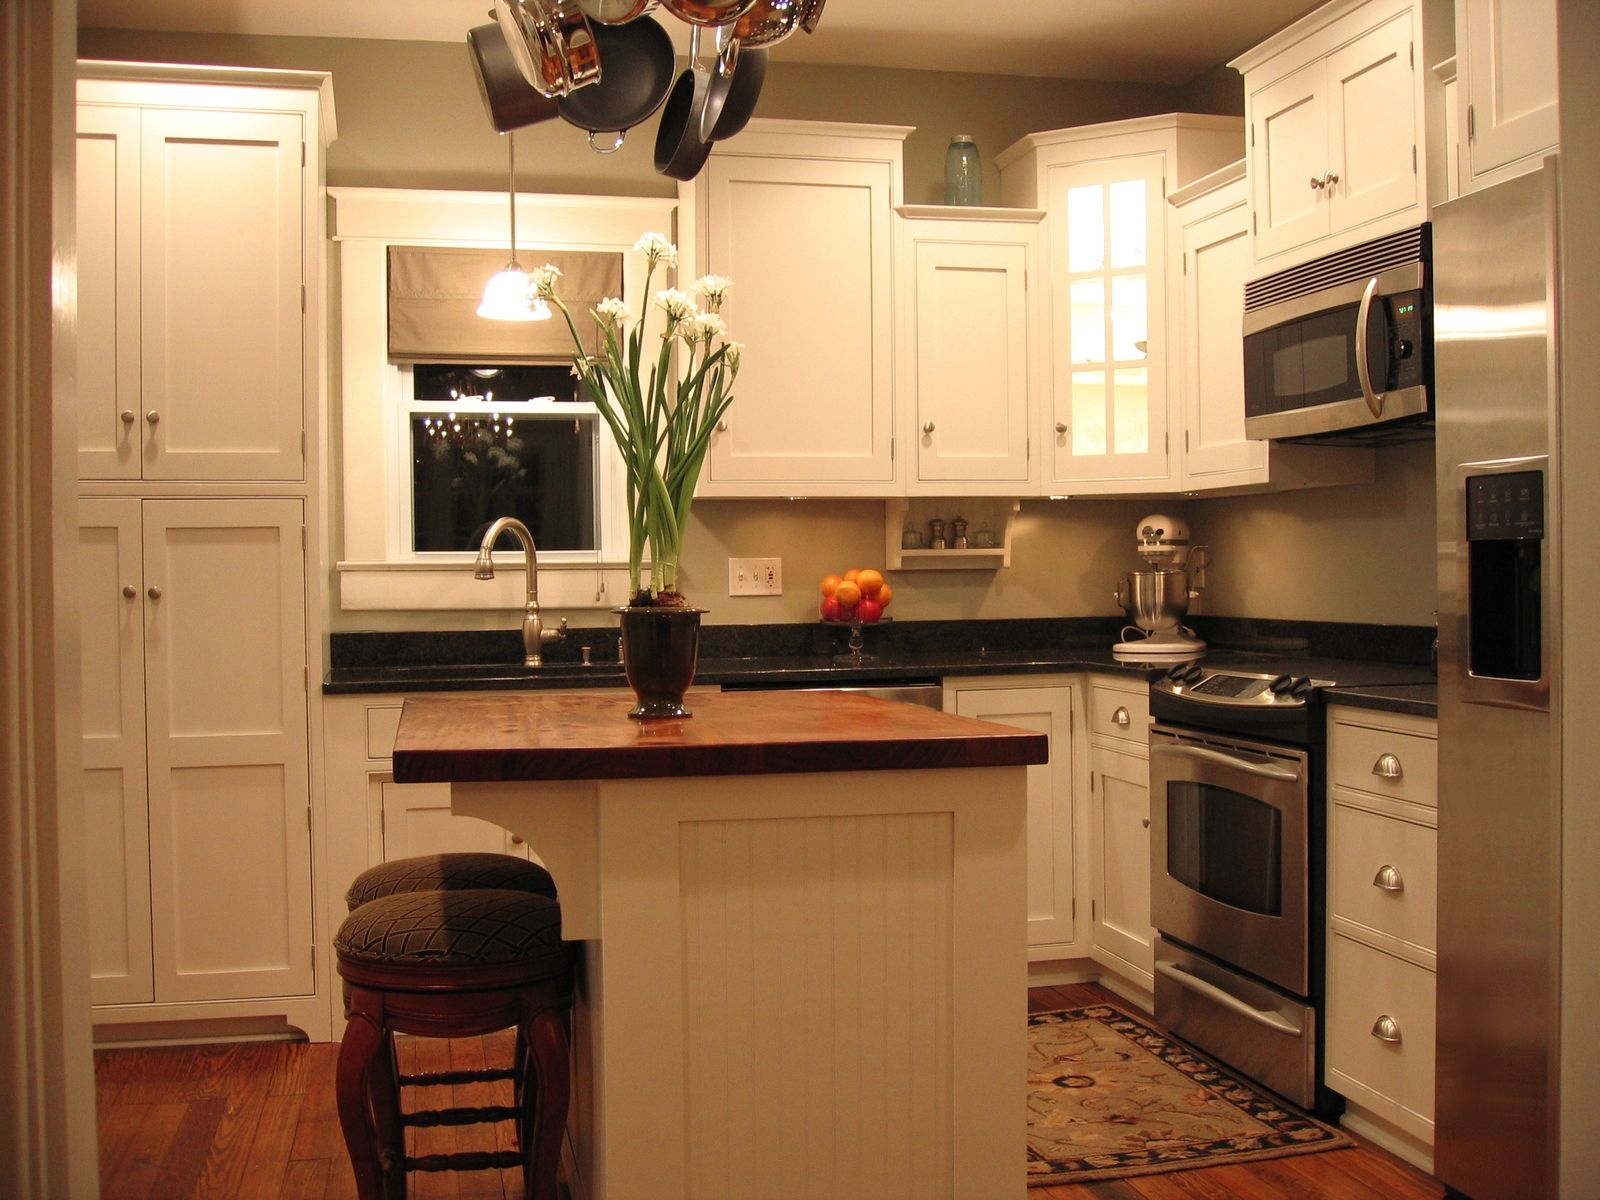 Custom Made Kitchen Cabinets custom kitchen cabinetsivy lane fine furniture | custommade